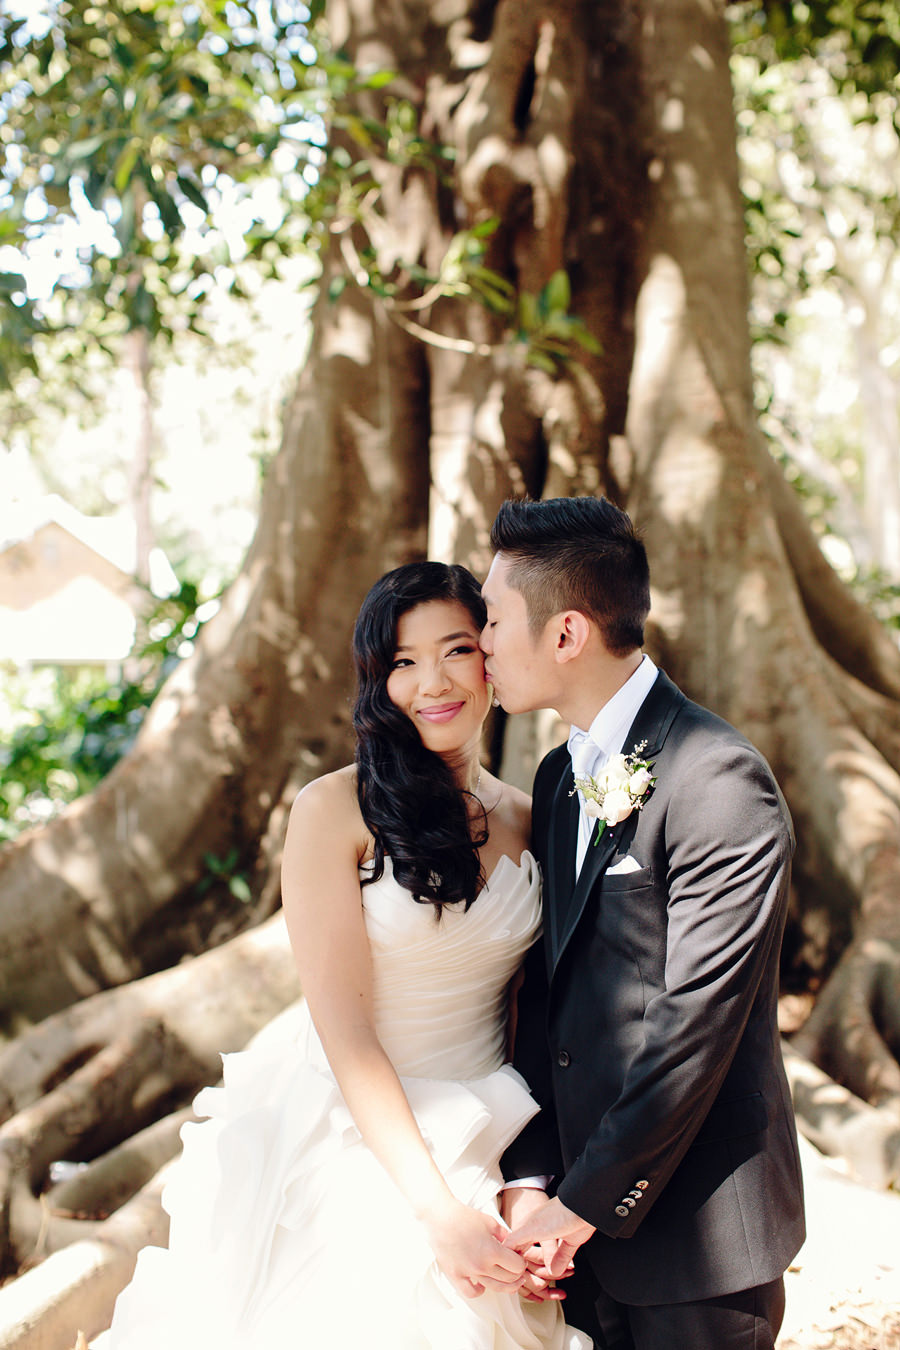 Balmain Wedding Photographer: Bride & Groom portraits